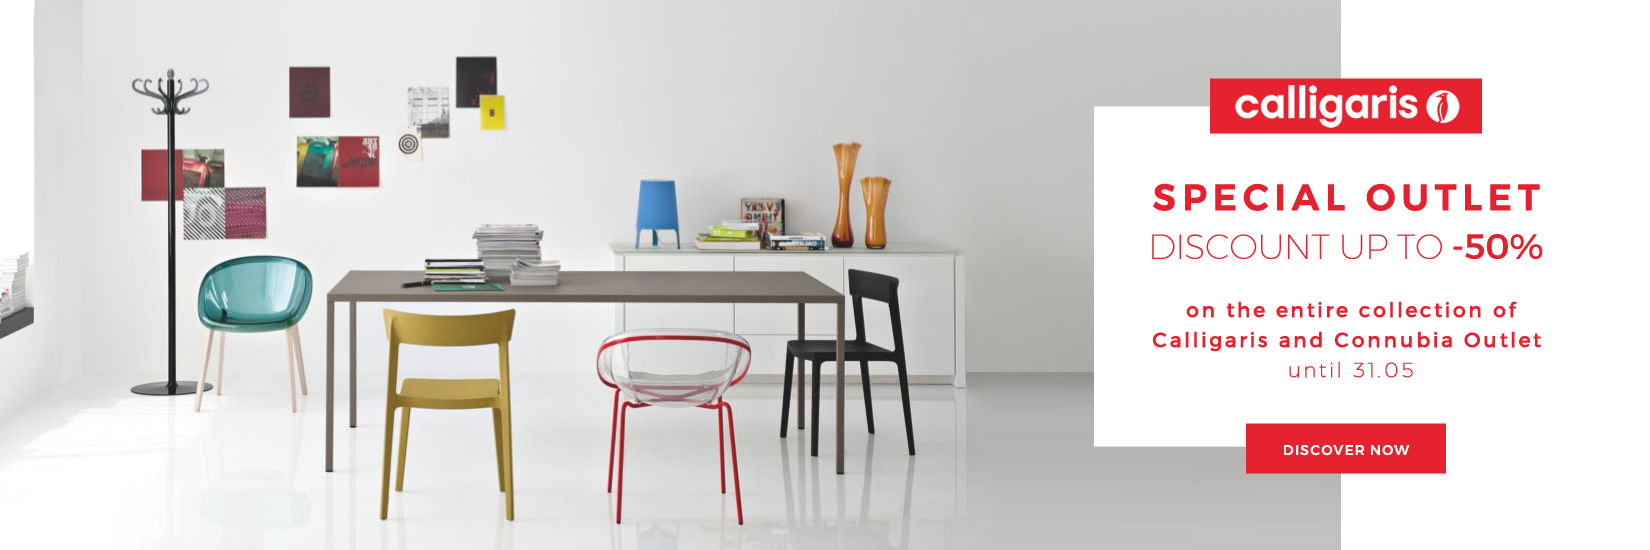 SPECIAL OUTLET DISCOUNT UP TO -70% on the entire collection of Calligaris and Connubia Outlet until 31.05